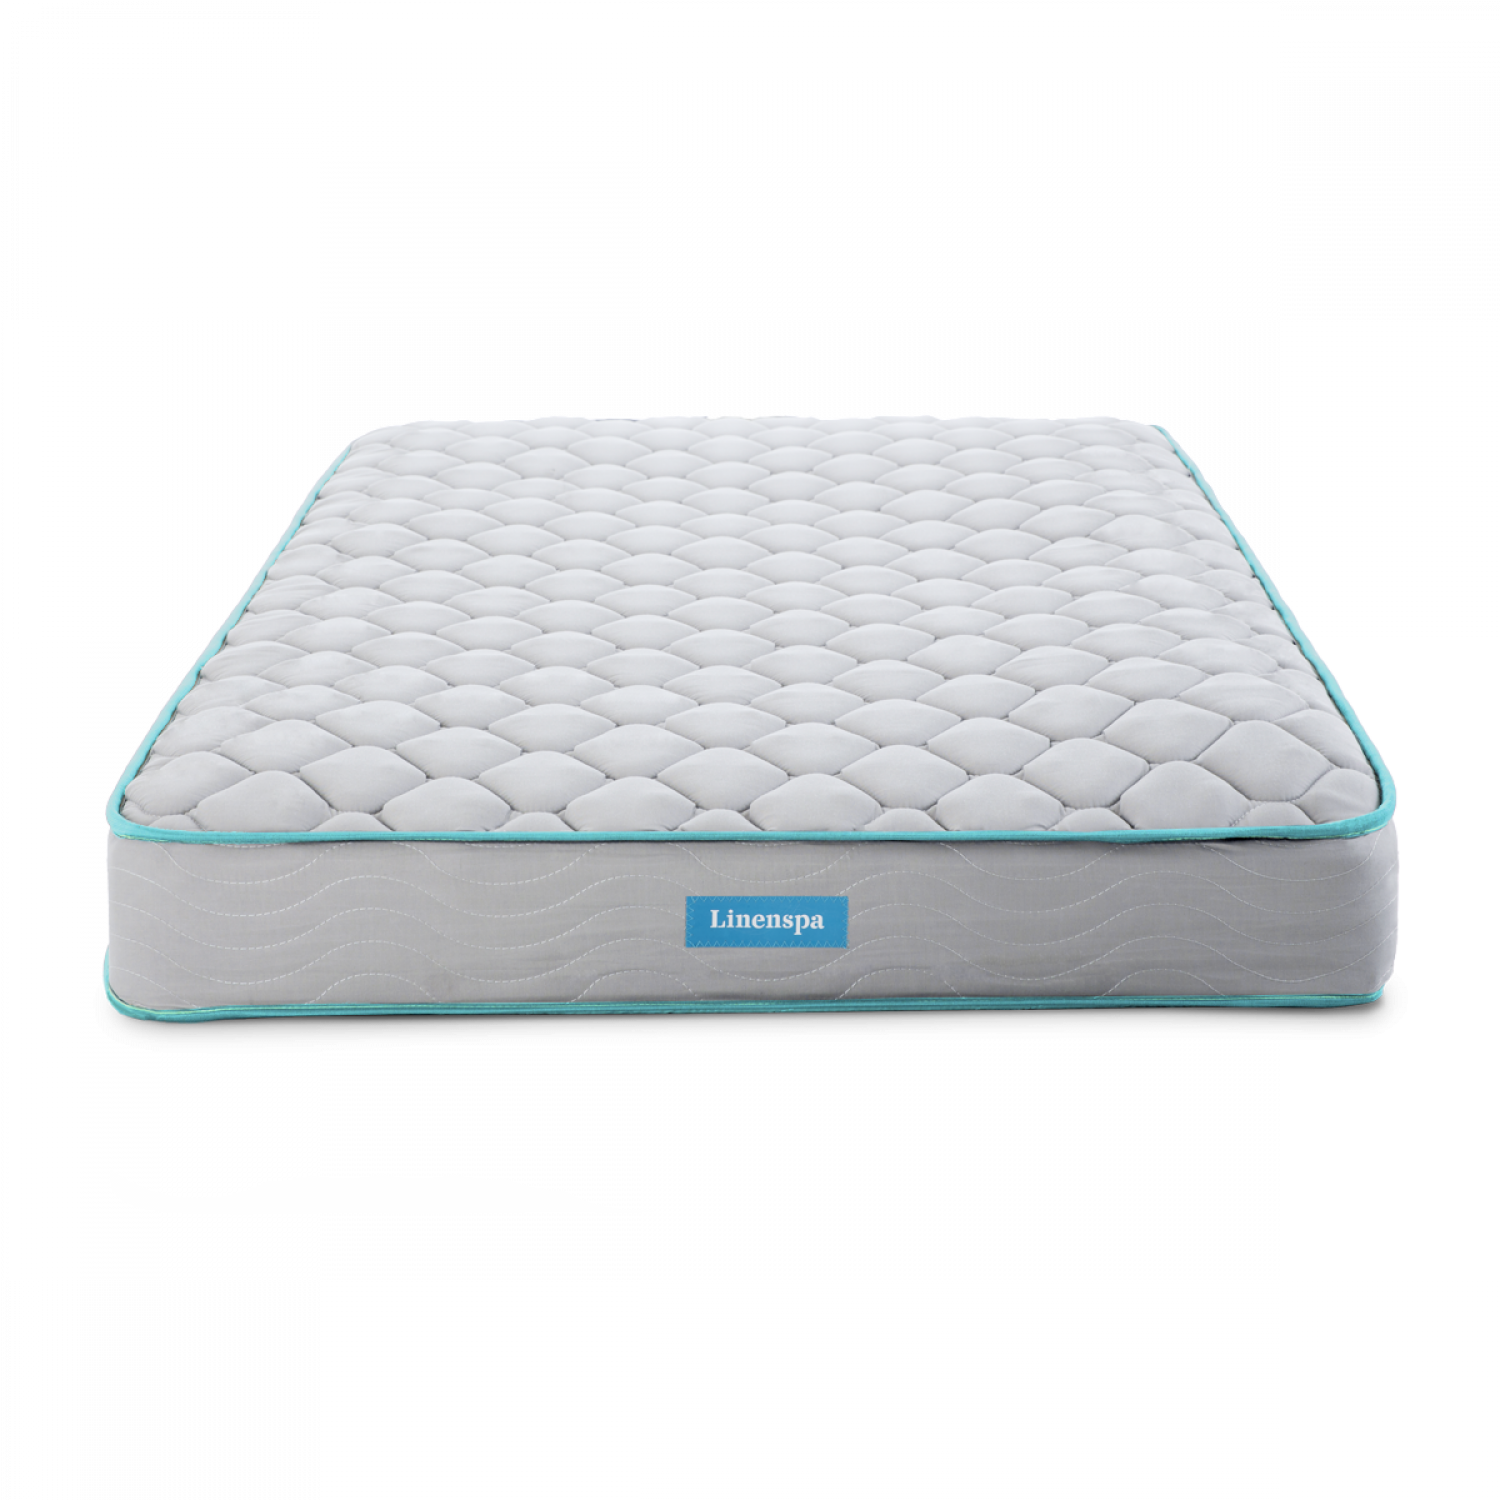 10 cheap queen mattress sets under 200 your reasonably priced